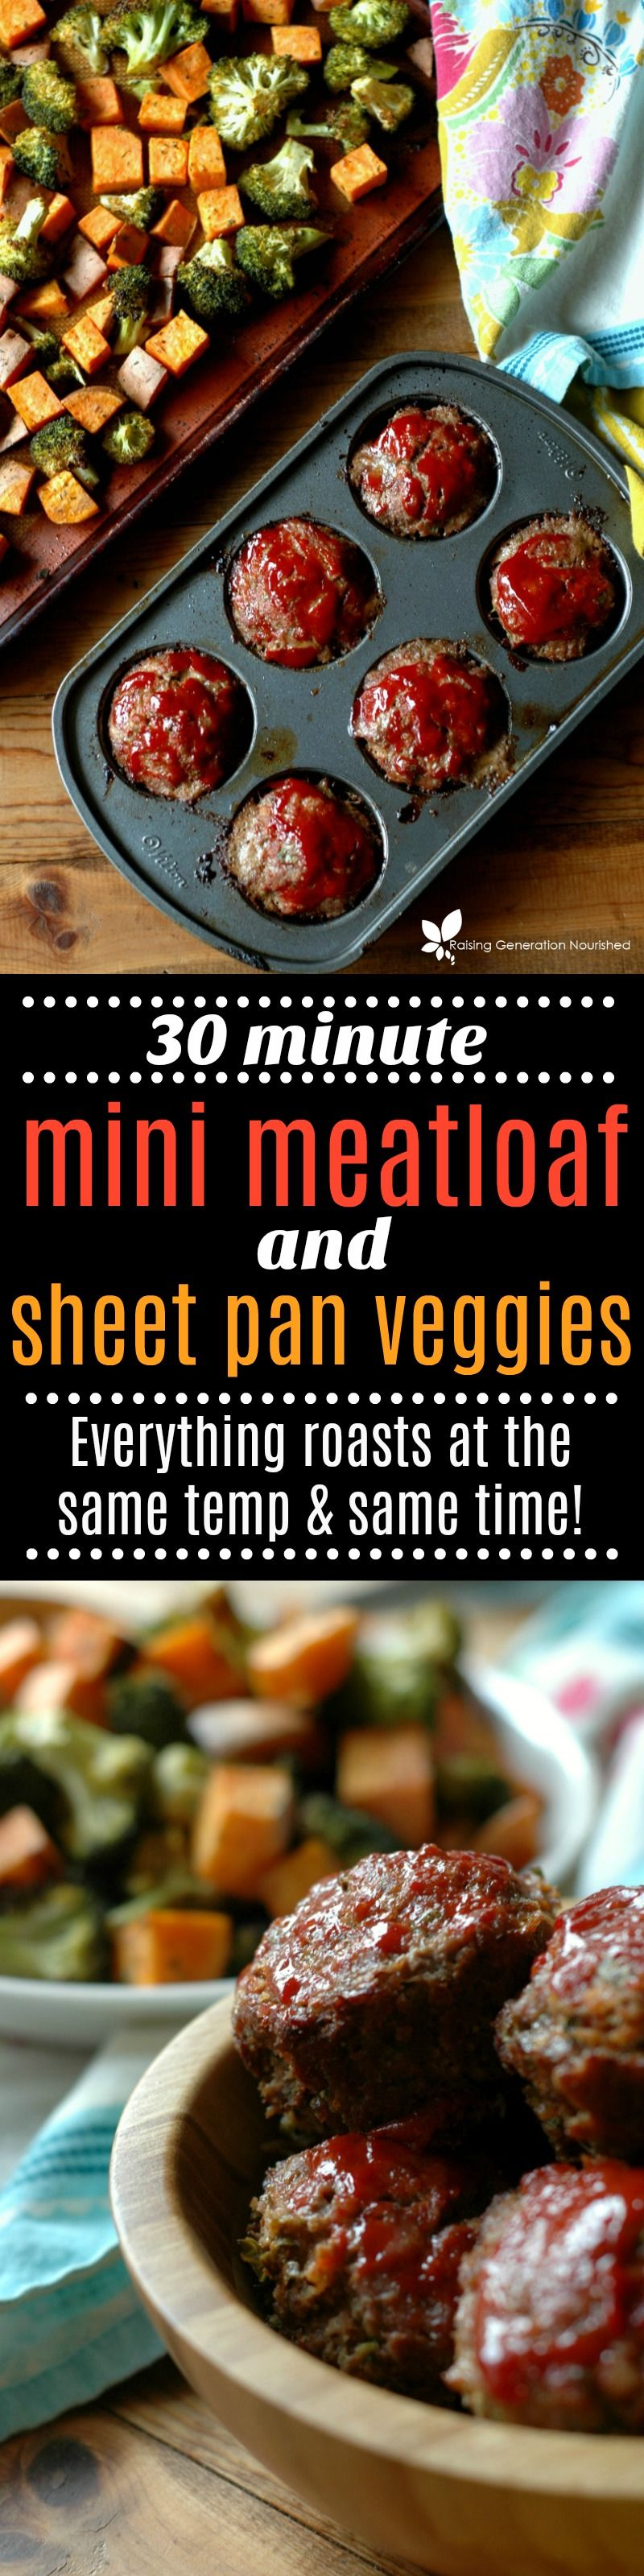 30 Minute Gluten Free Grassfed Mini Meatloaf With Sheet Pan Roasted Veggies Recipe Food Meatloaf Meatloaf Muffins Real Food Recipes